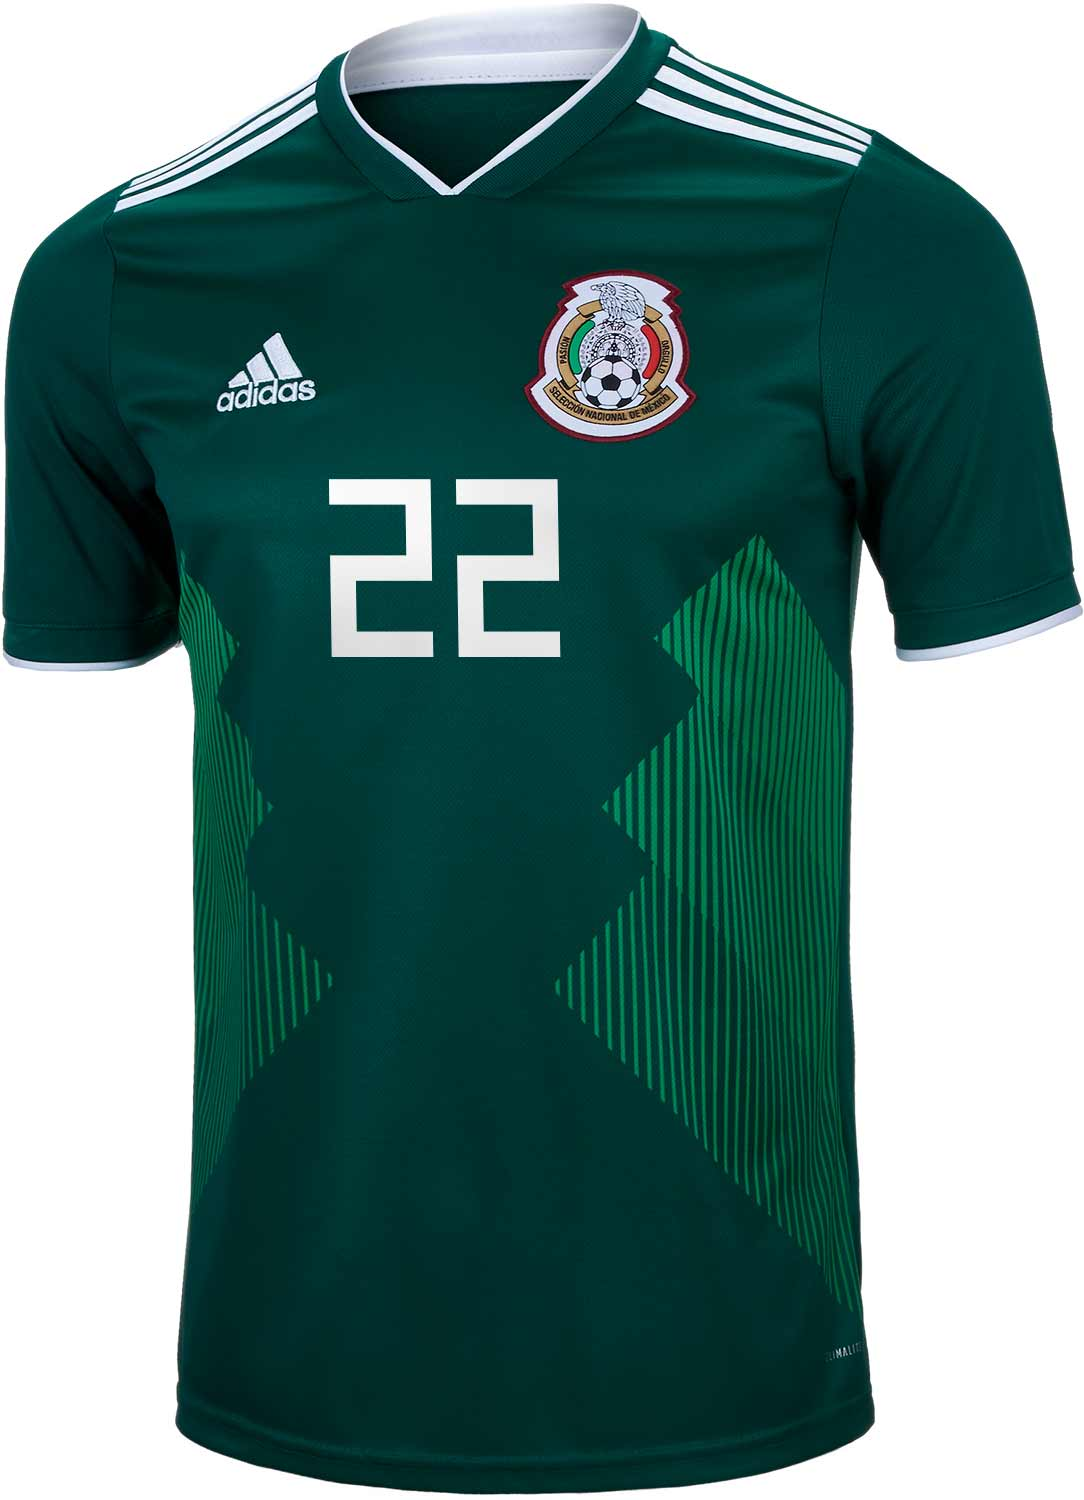 reputable site a4f4a 496d5 2018/19 adidas Kids Hirving Lozano Mexico Home Jersey ...